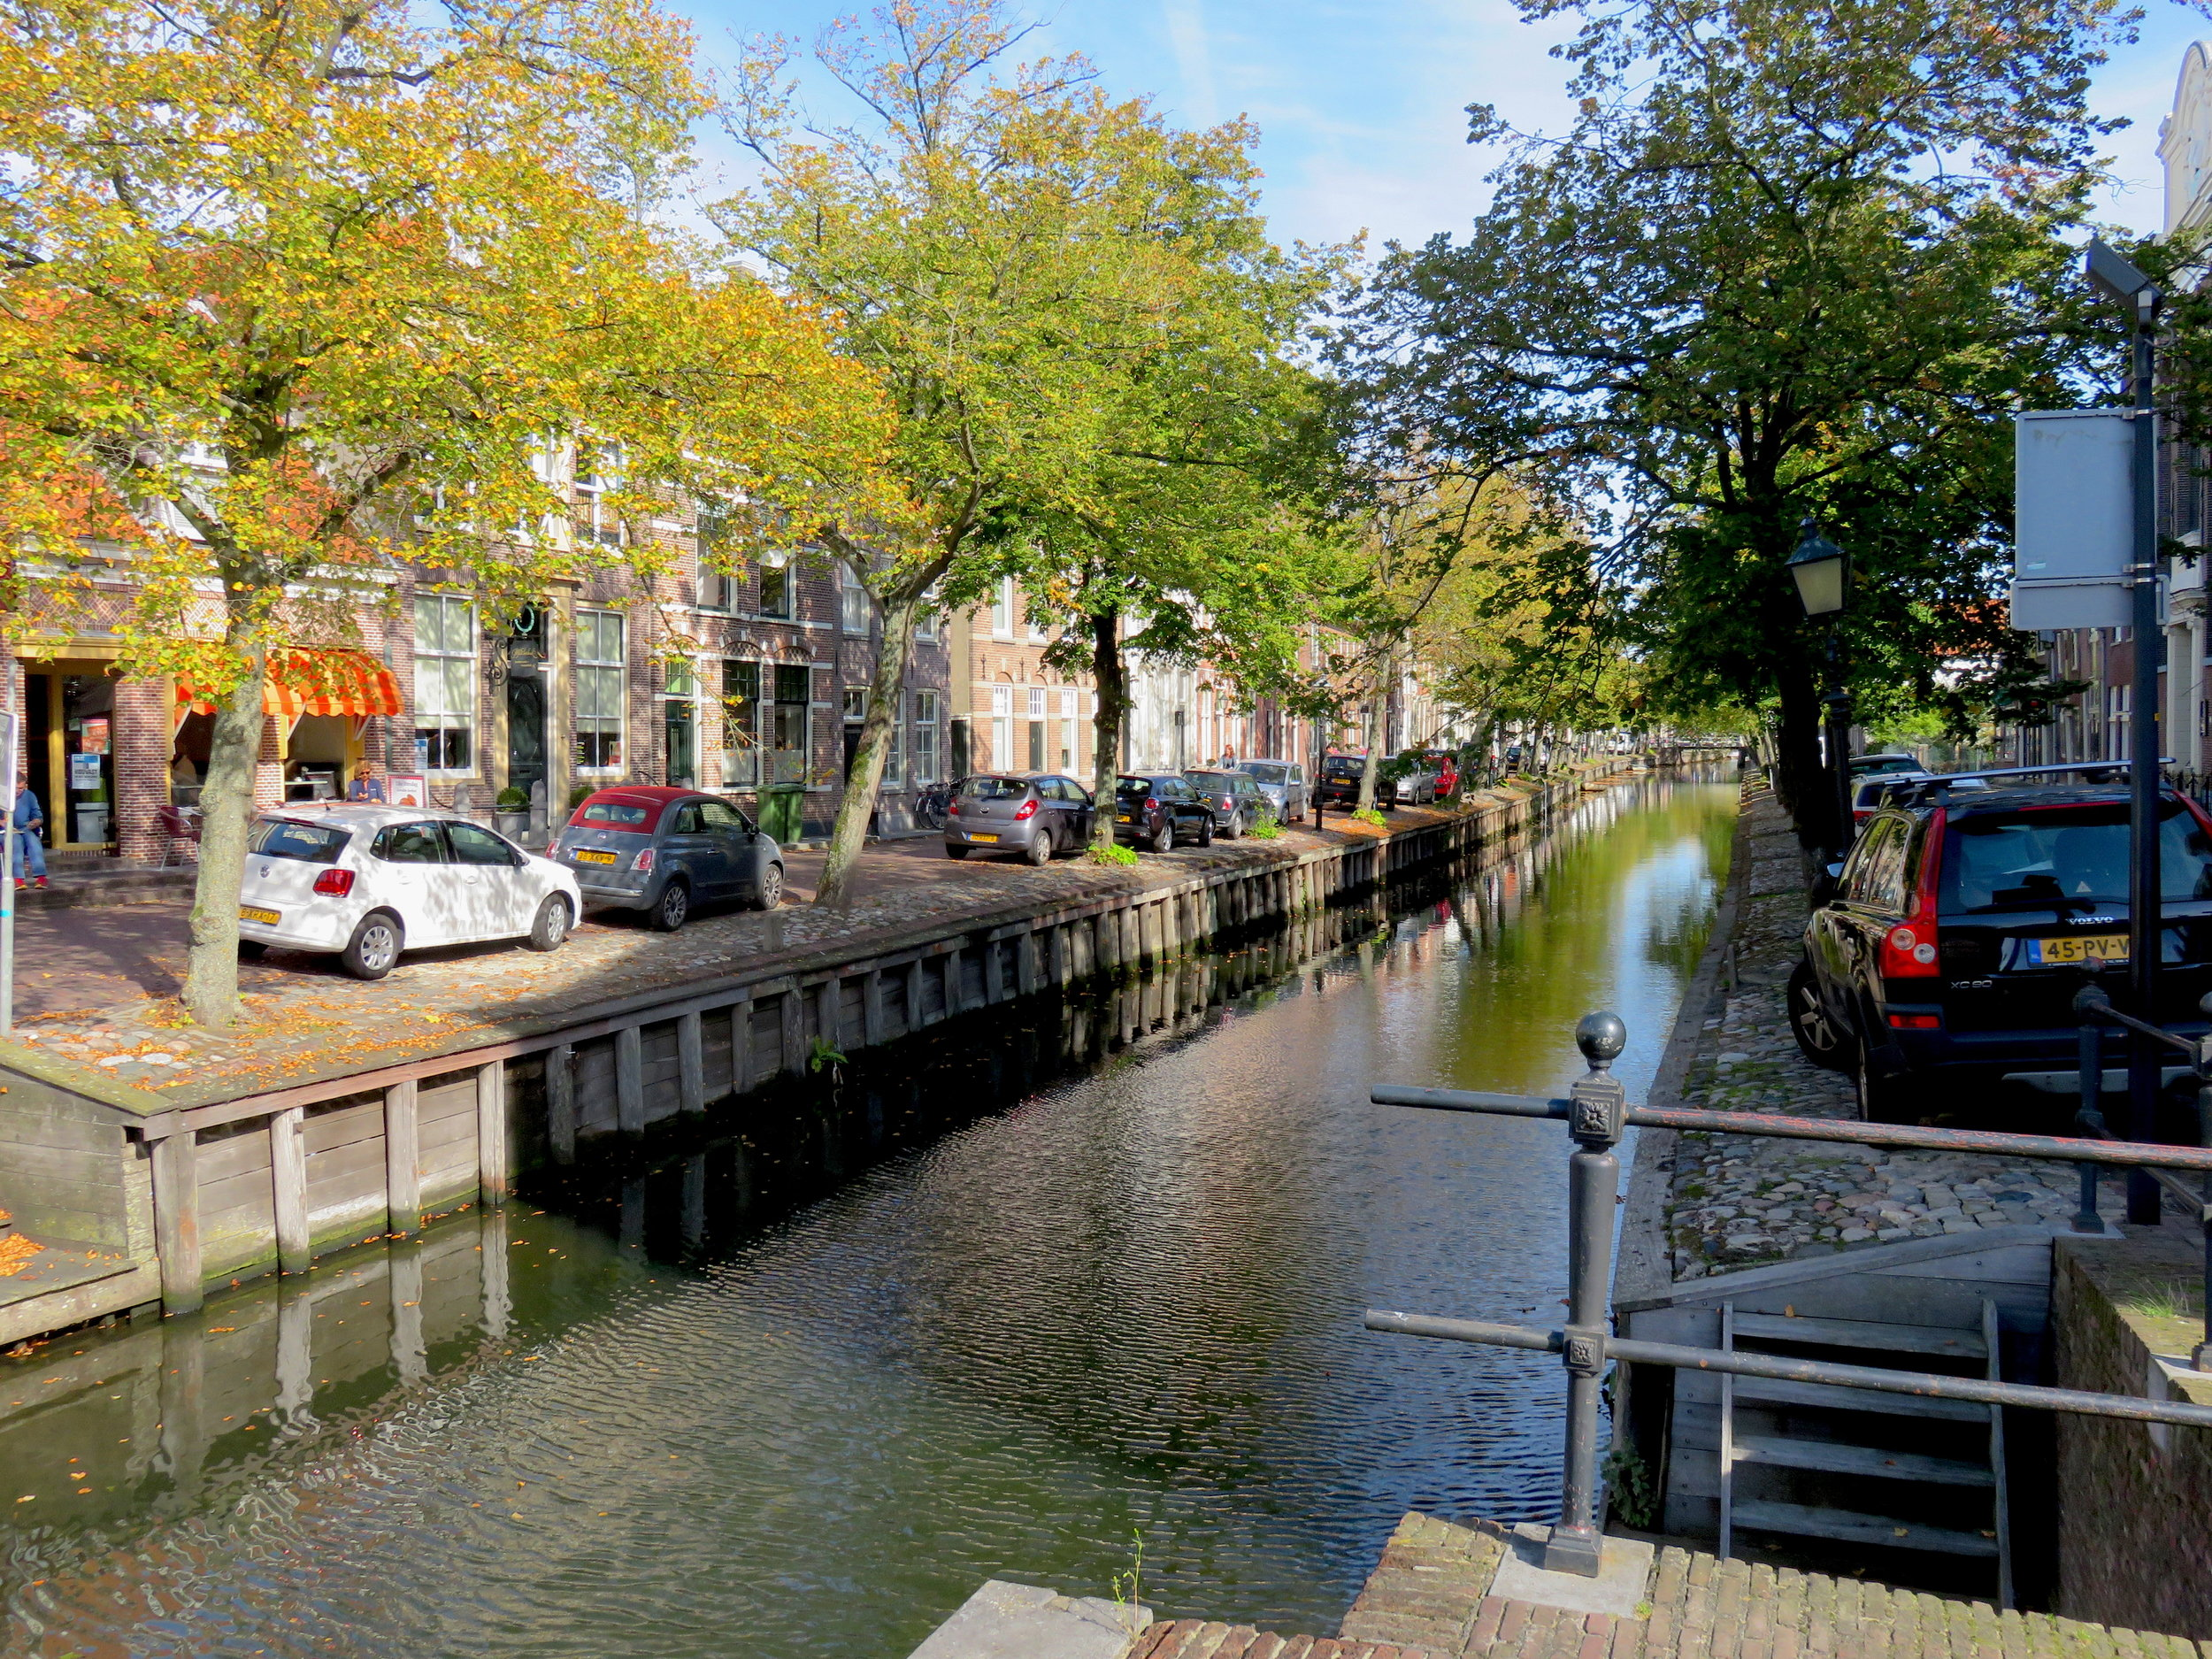 A drive-by to Edam prooves rewarding.